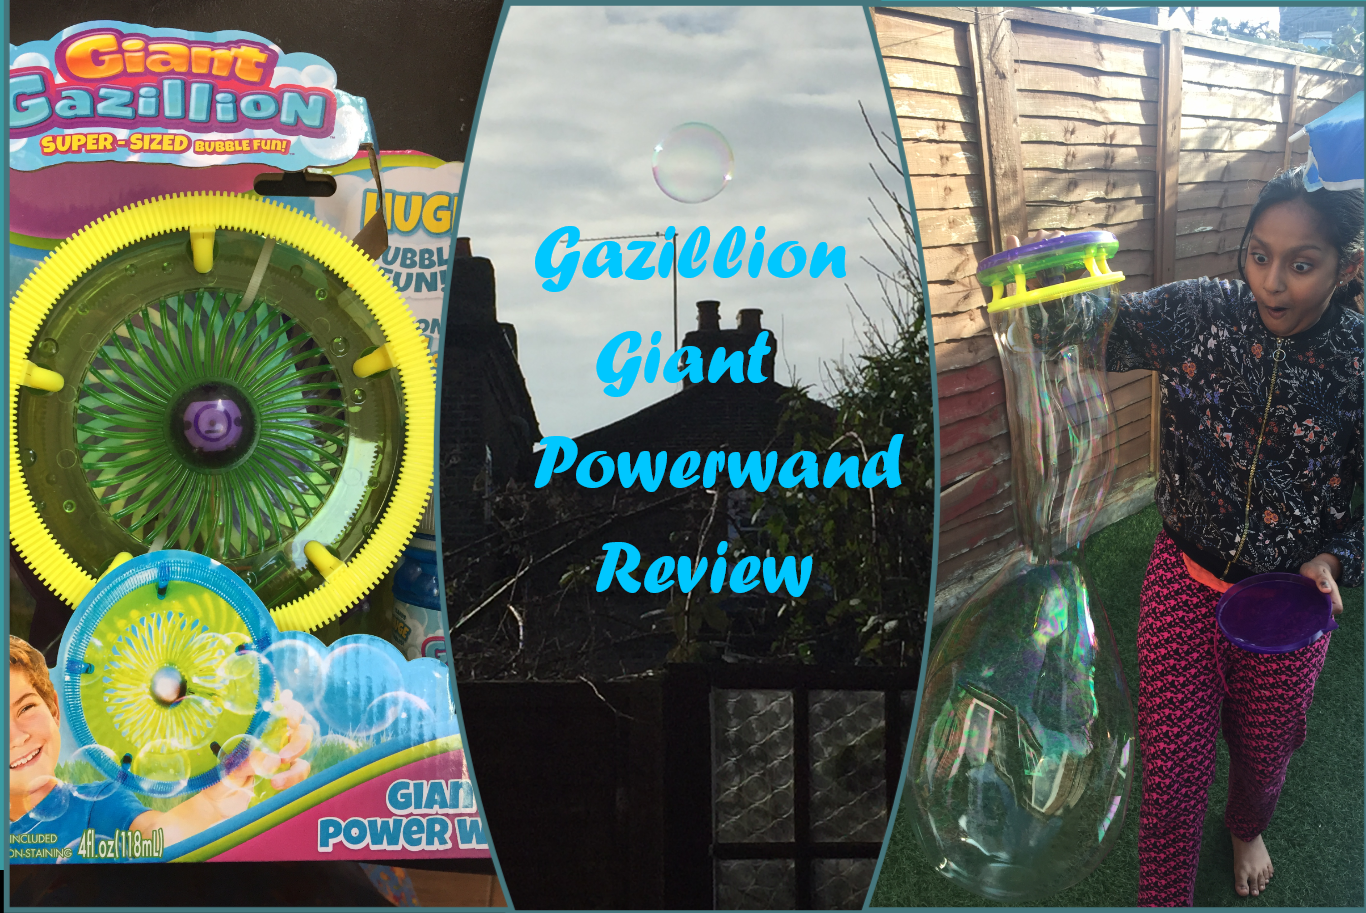 Review – Gazillion Giant Power Wand